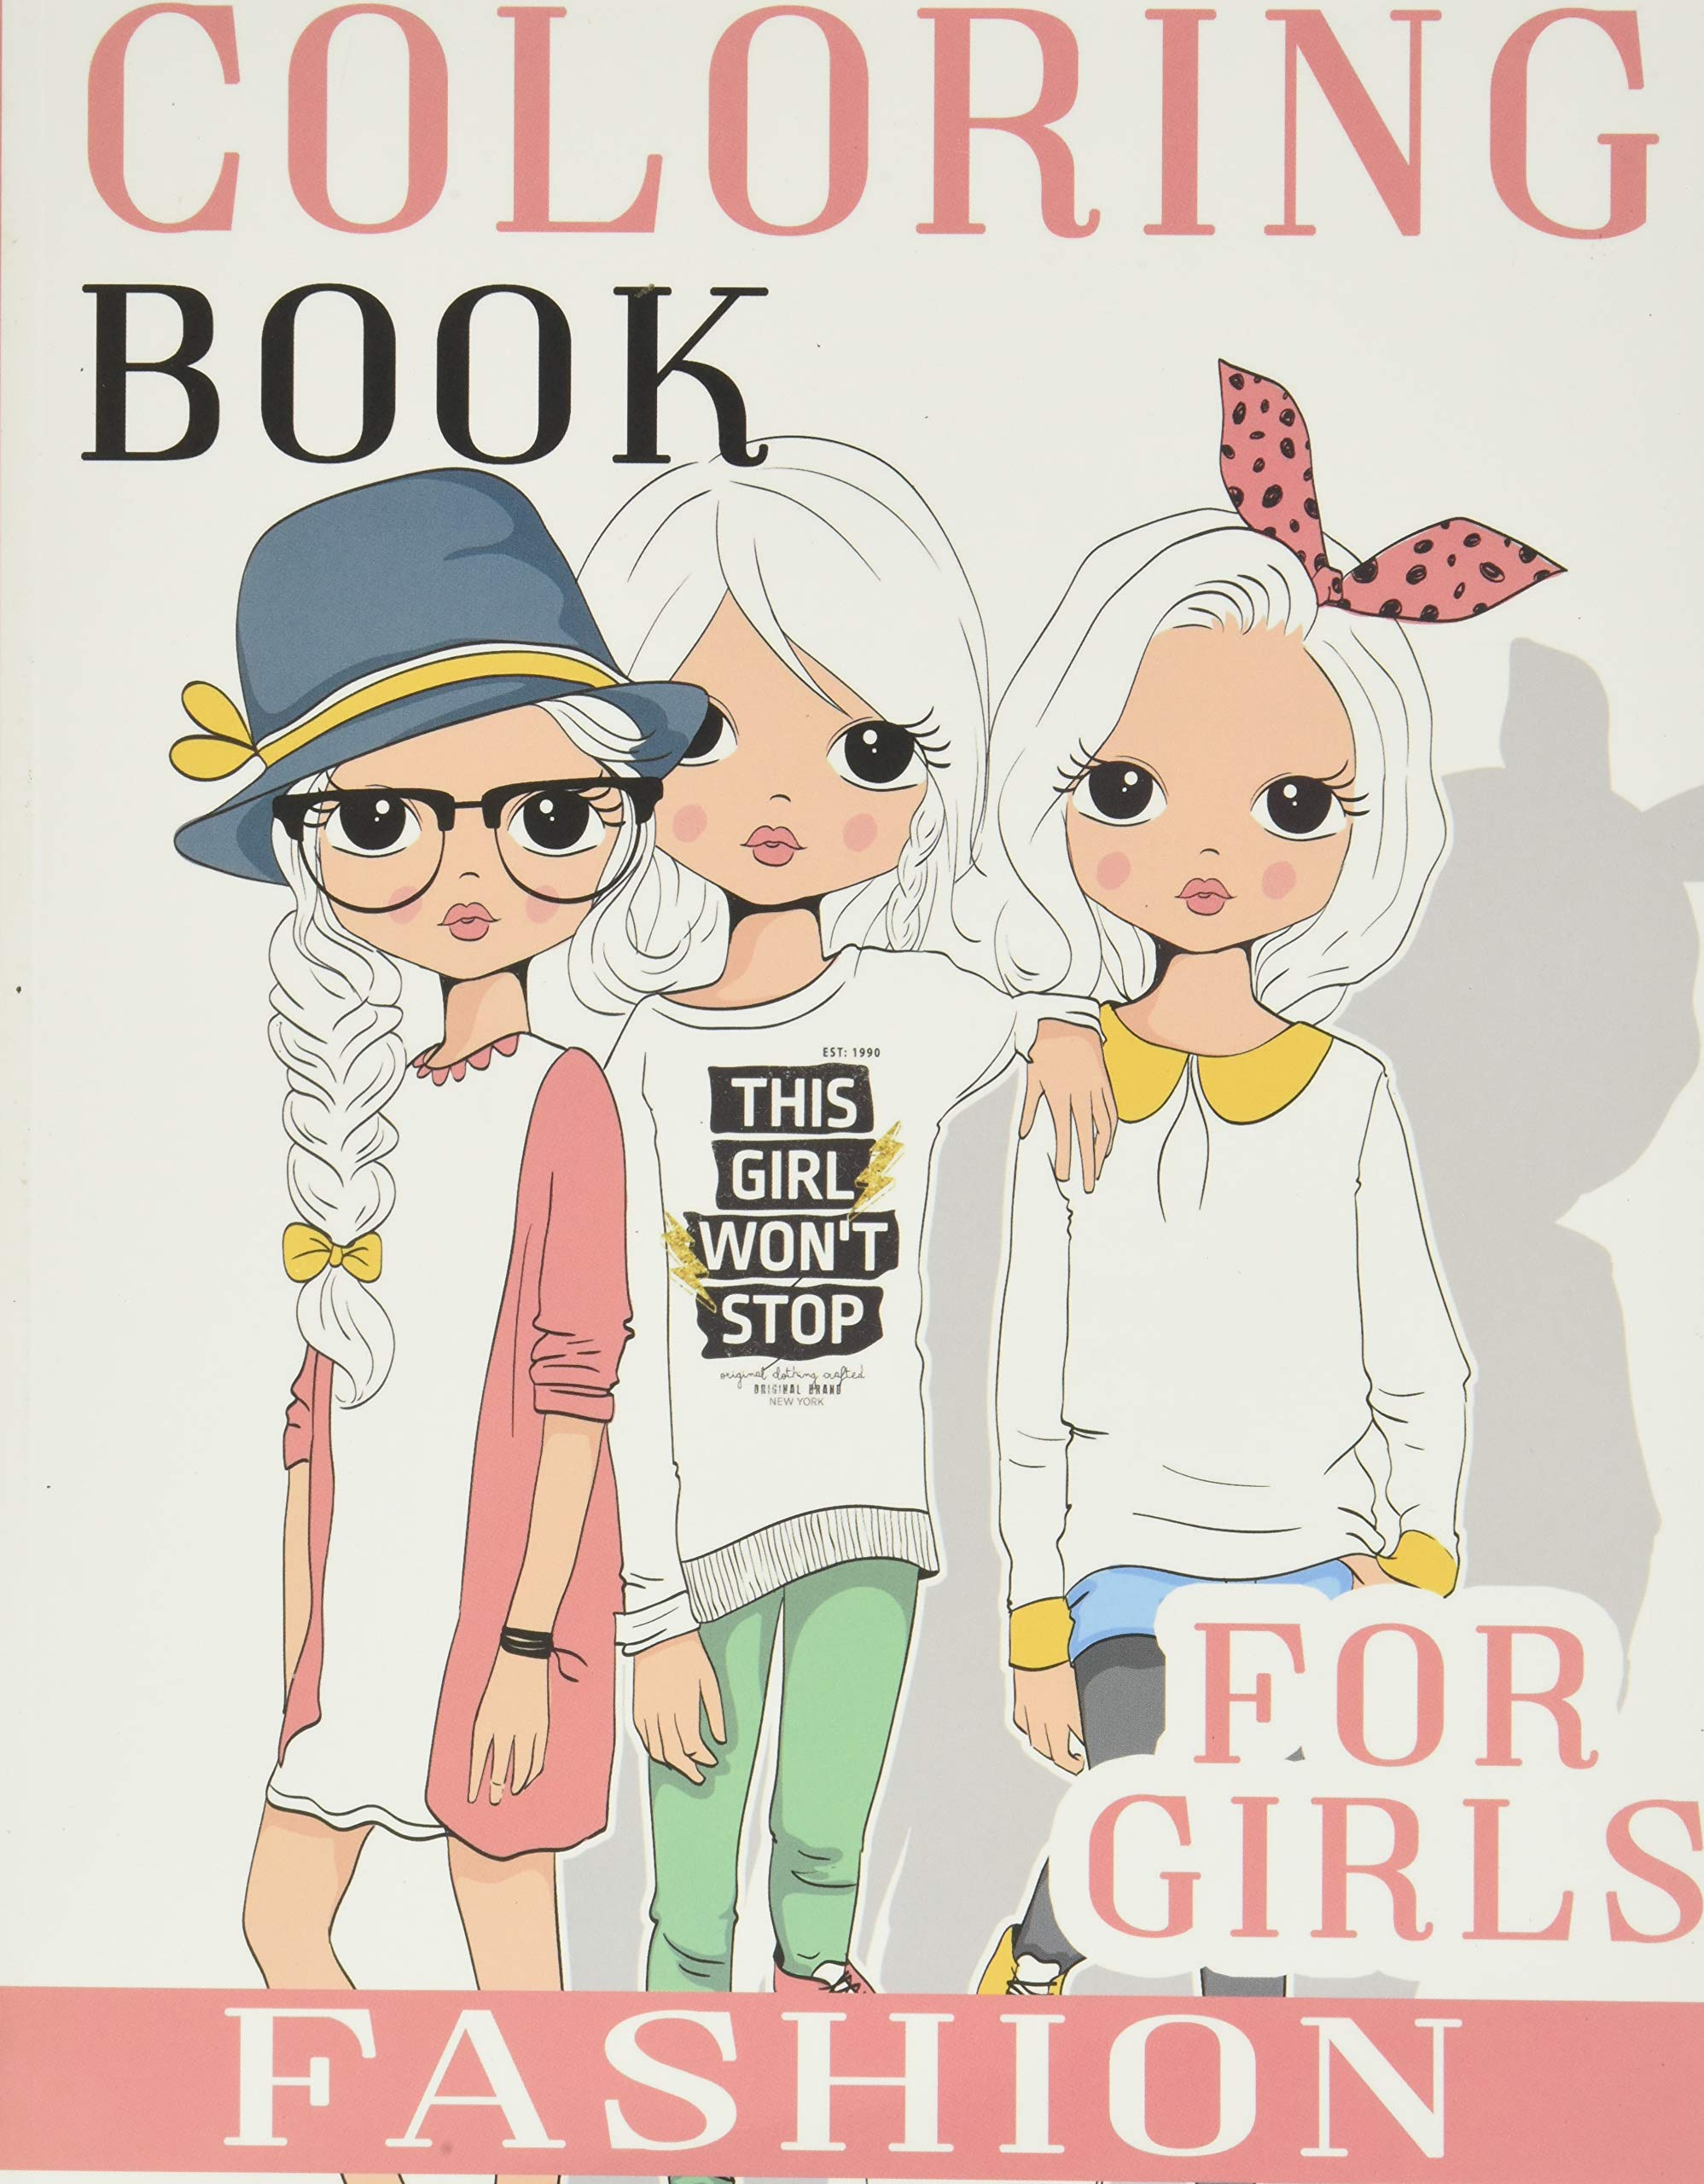 Fashion Coloring Book For Girls Over 300 Fun Coloring Pages For Girls And Kids With Gorgeous Beauty Fashion Style Other Cute Designs Publishing Love Rain 9781075375507 Amazon Com Books